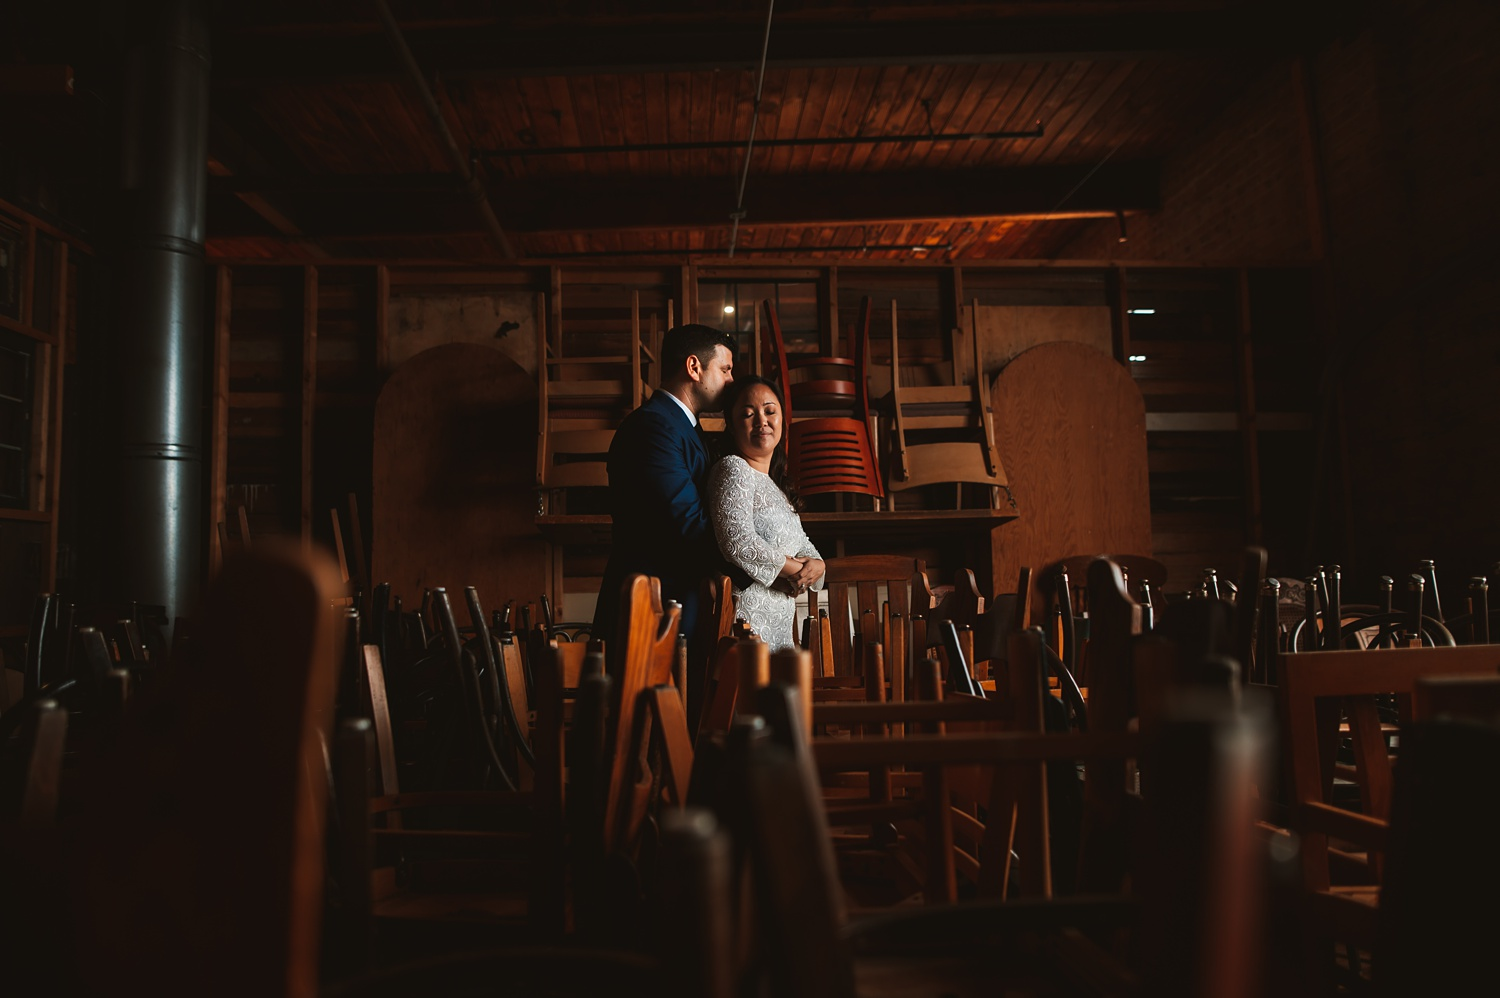 Salvage One Elopement wedding photos - The Adamkovi, creative wedding photos